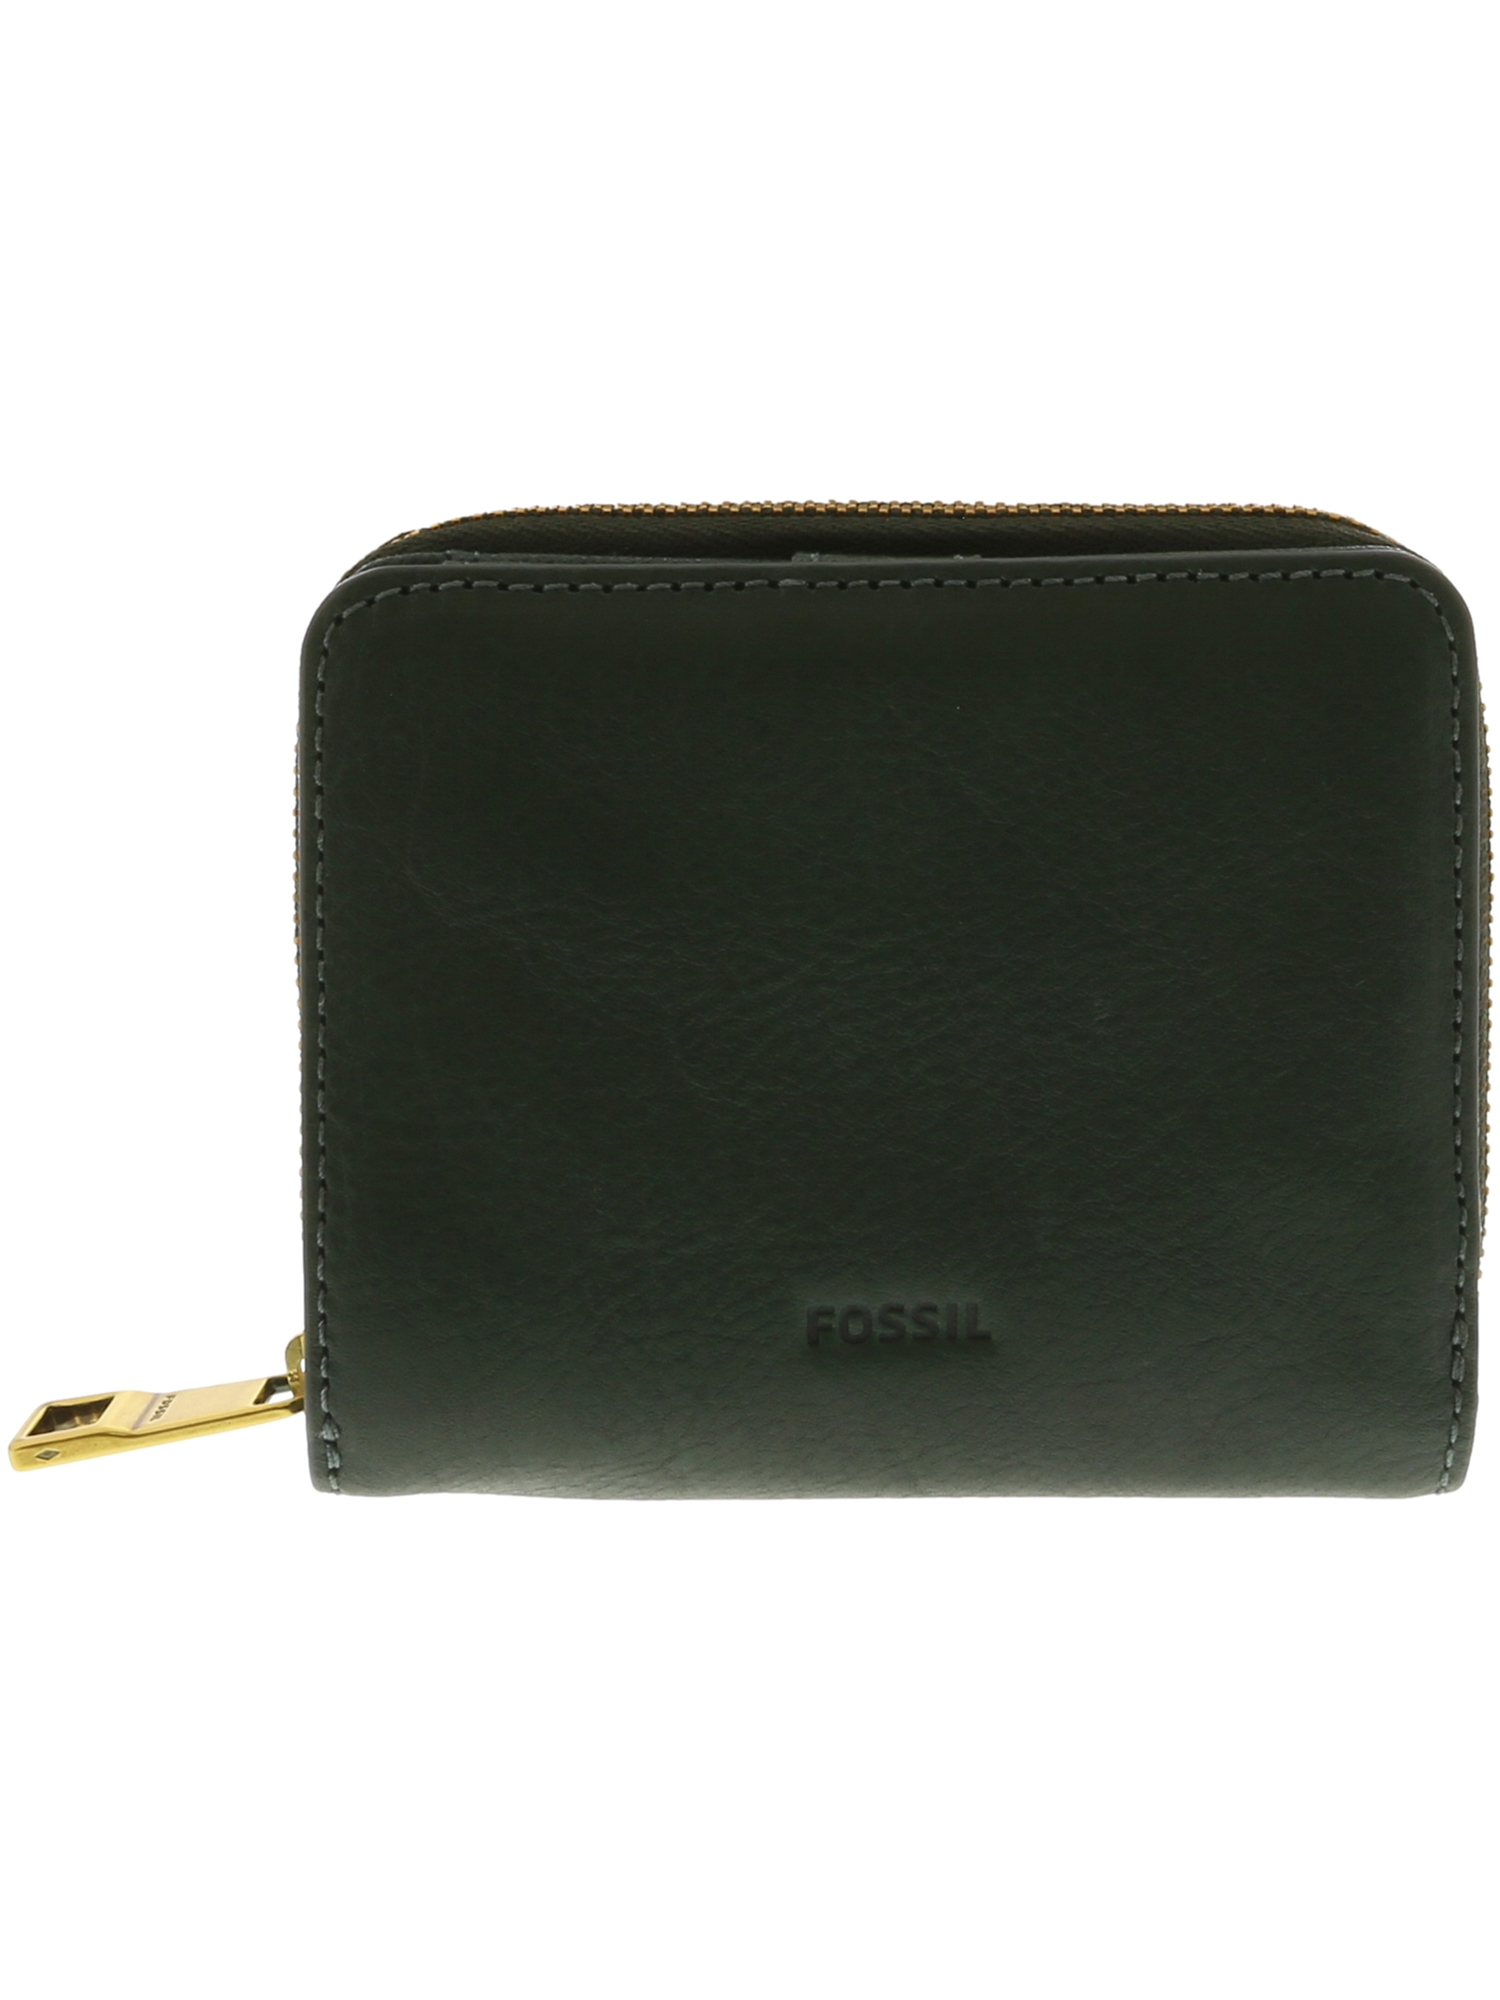 65bf87c656a Fossil Women's Mini Emma Rfid Multifunction Leather Wallet - Alpine Green